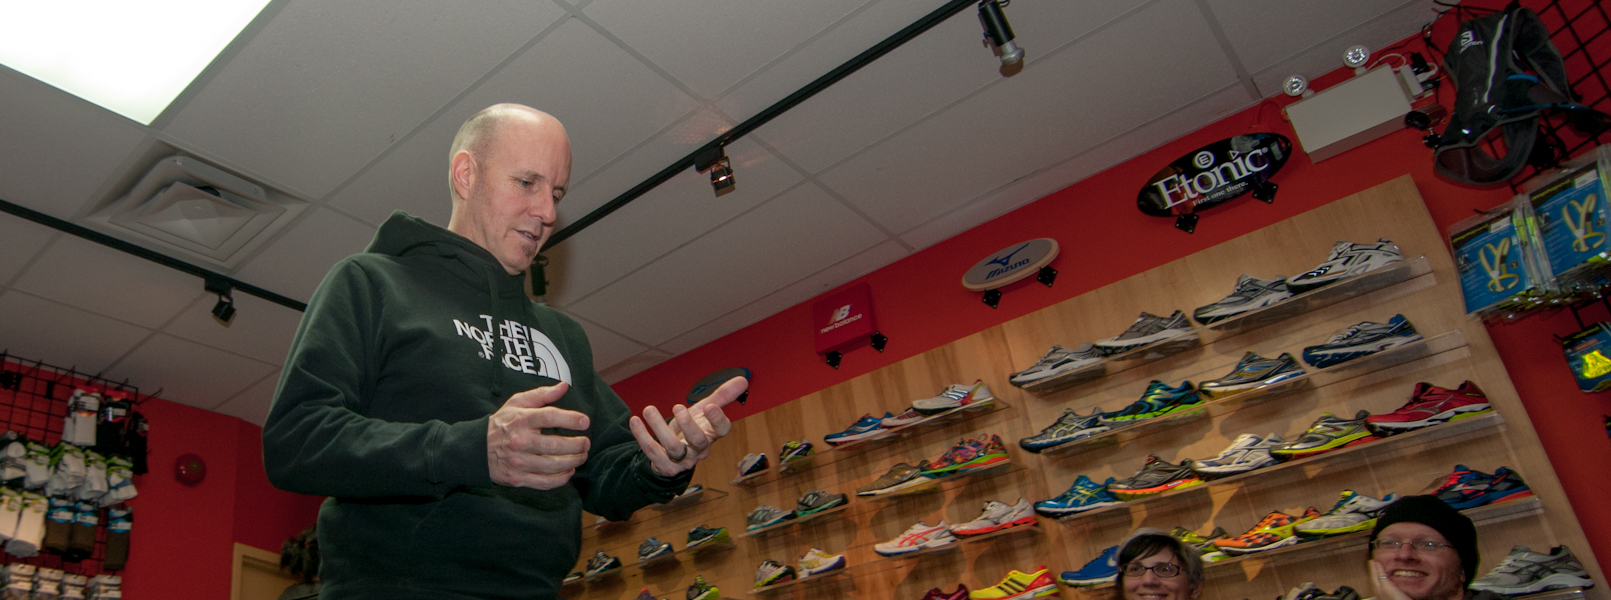 Race Director Dwayne Sandall demonstrating what not to do with your GPS during the race!